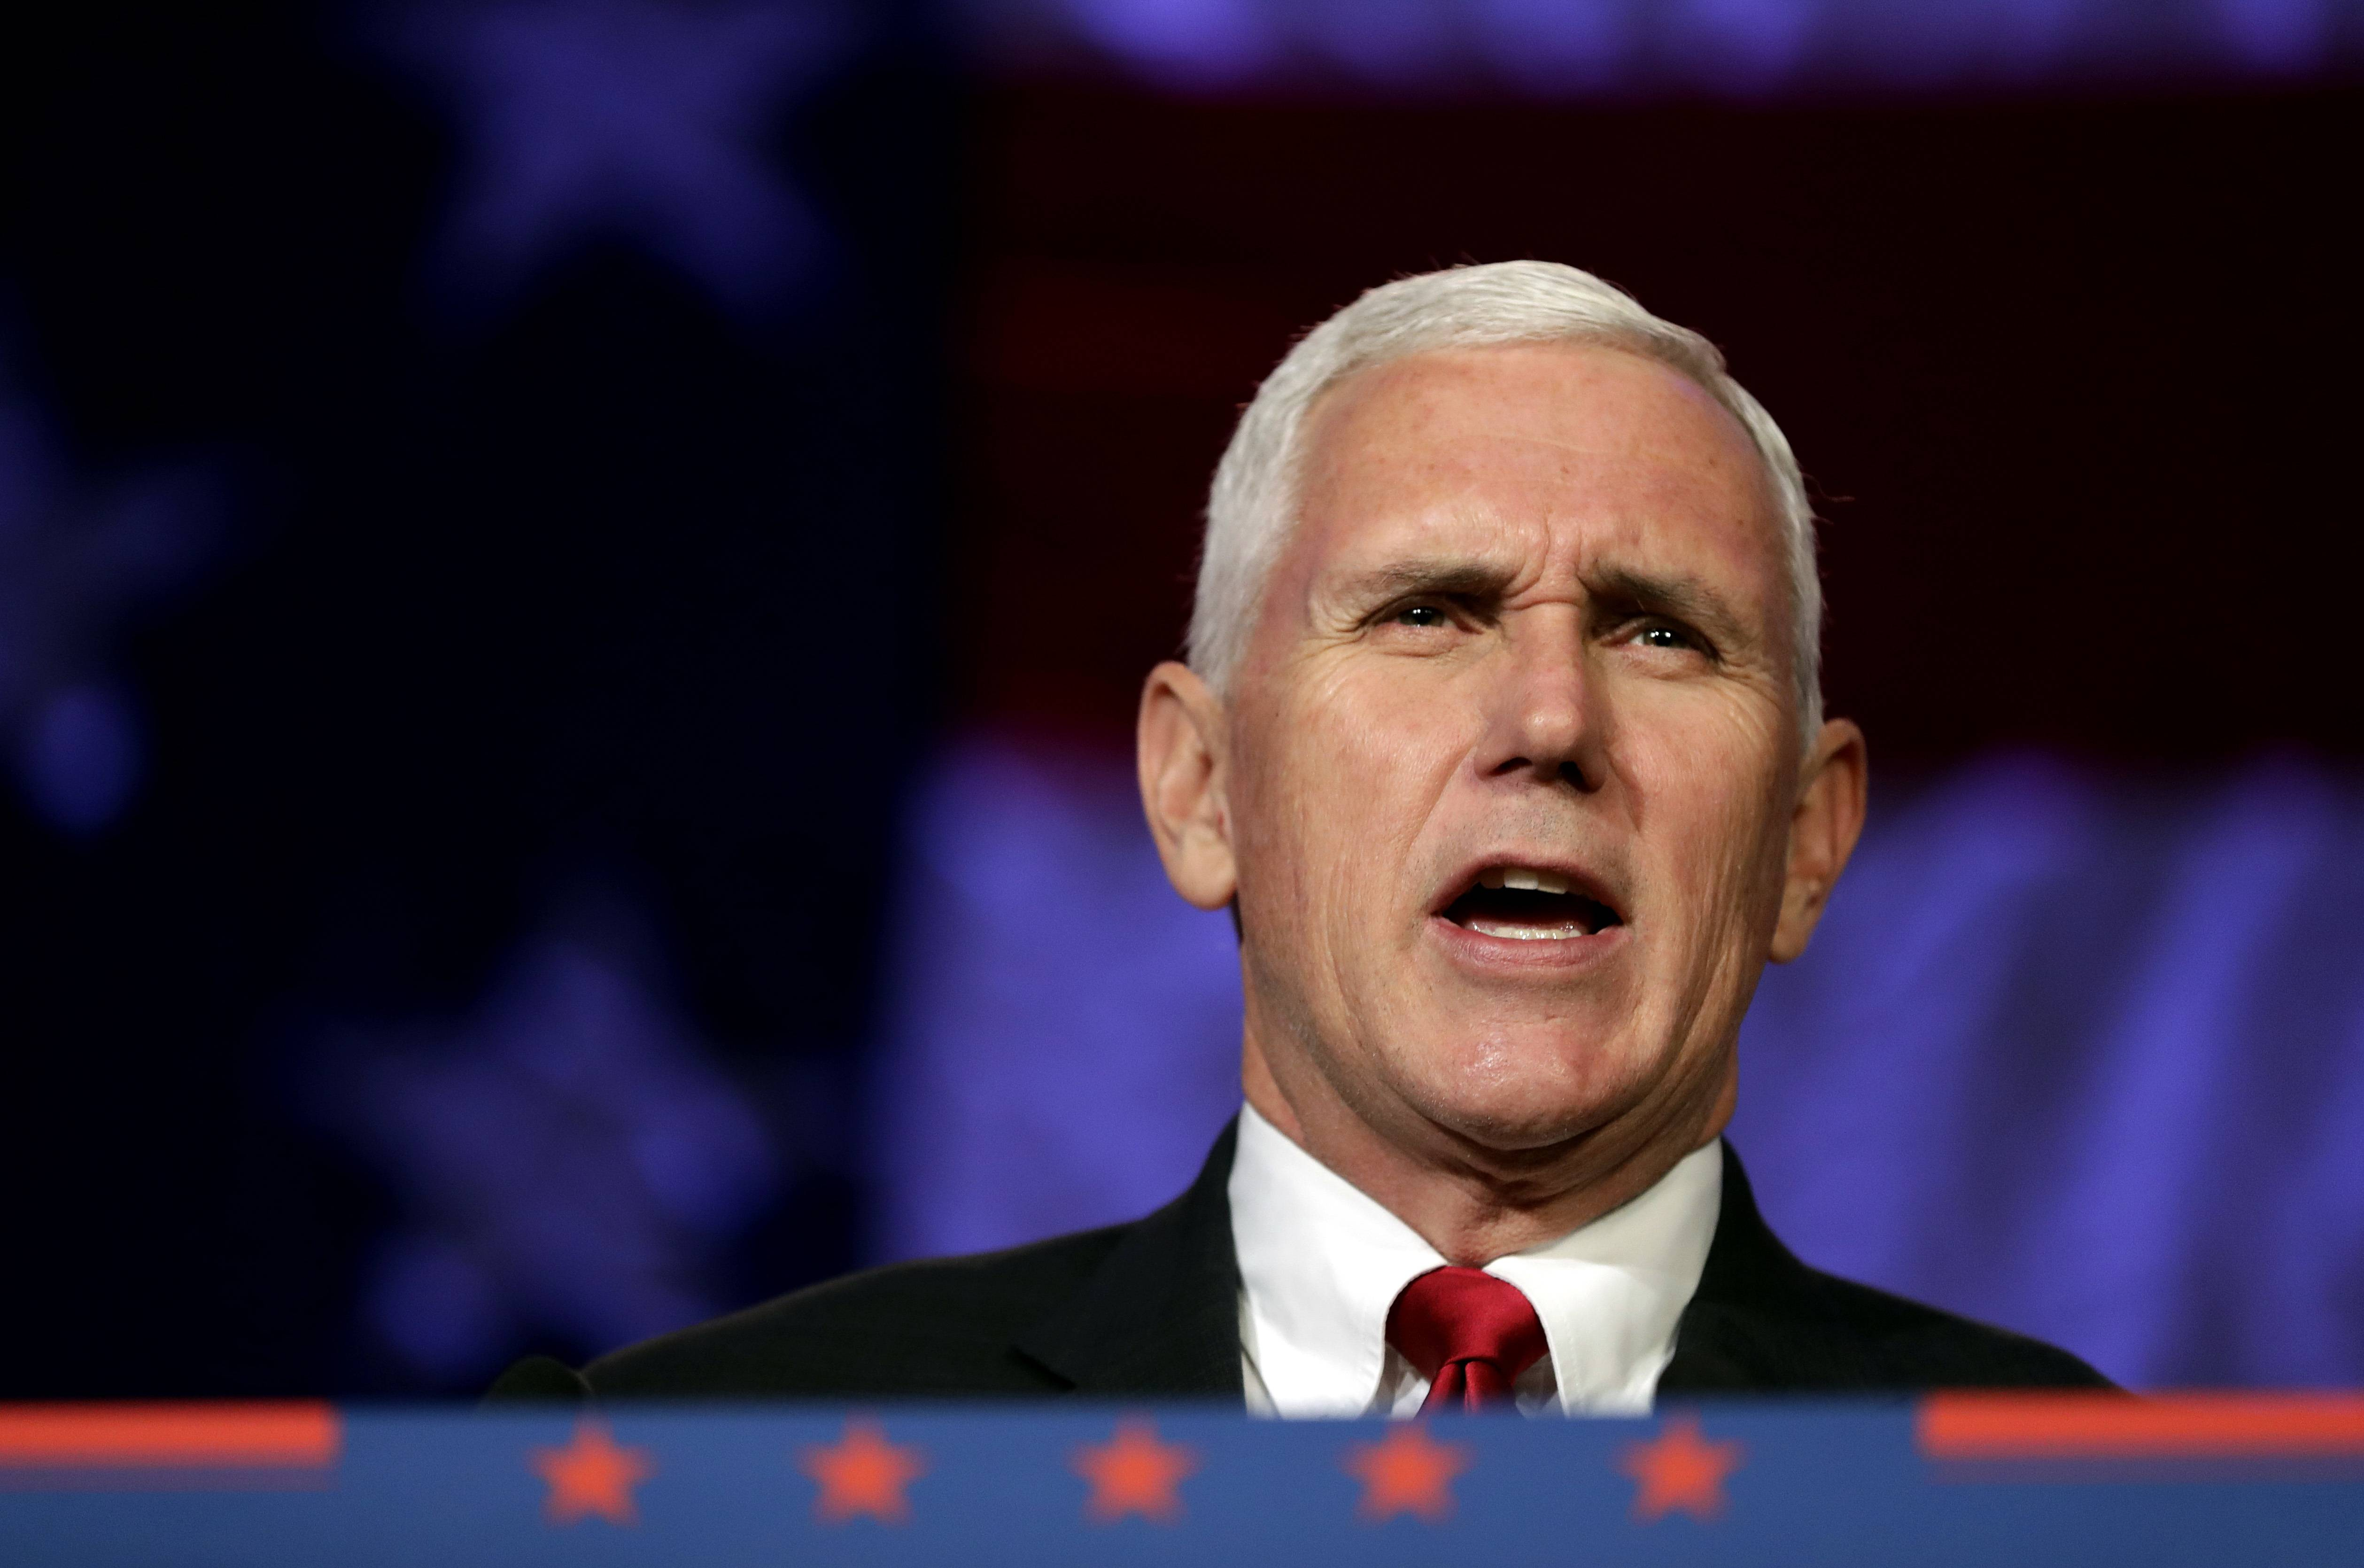 Vice President Mike Pence will make a stop in Rosemont Friday to tout the federal tax law approved late last year. Village officials are preparing for large crowds of supporters and protesters.